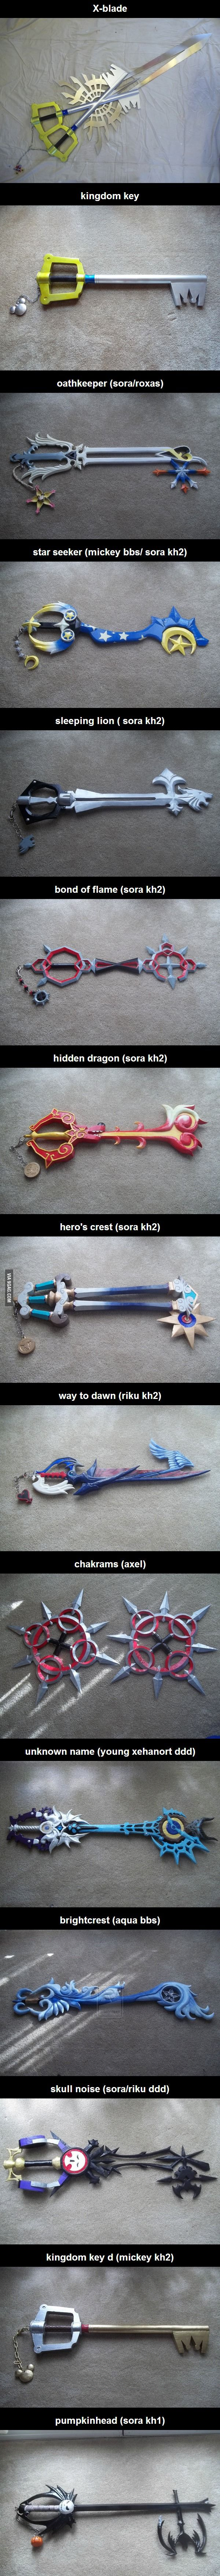 Keyblades (and chakrams). I want to own these keys